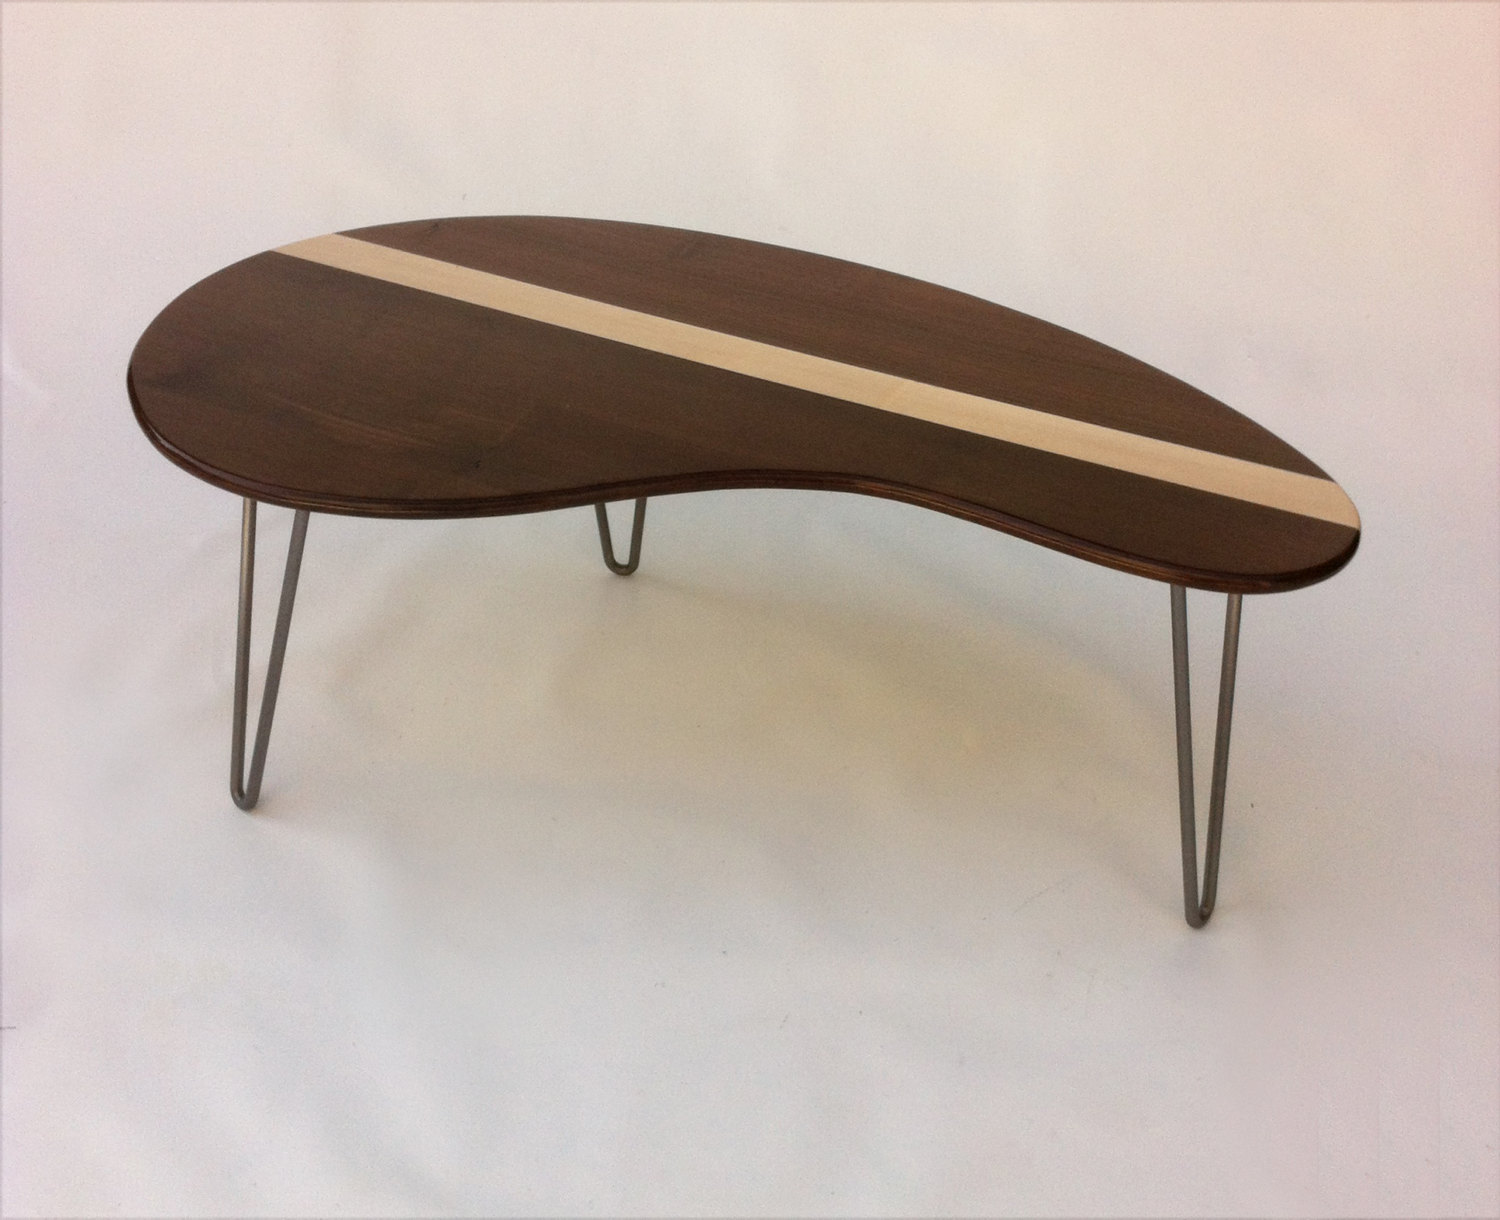 Mid Century Modern Coffee Table Solid Walnut With Maple Inlay Kidney Bean Shaped Eames Era